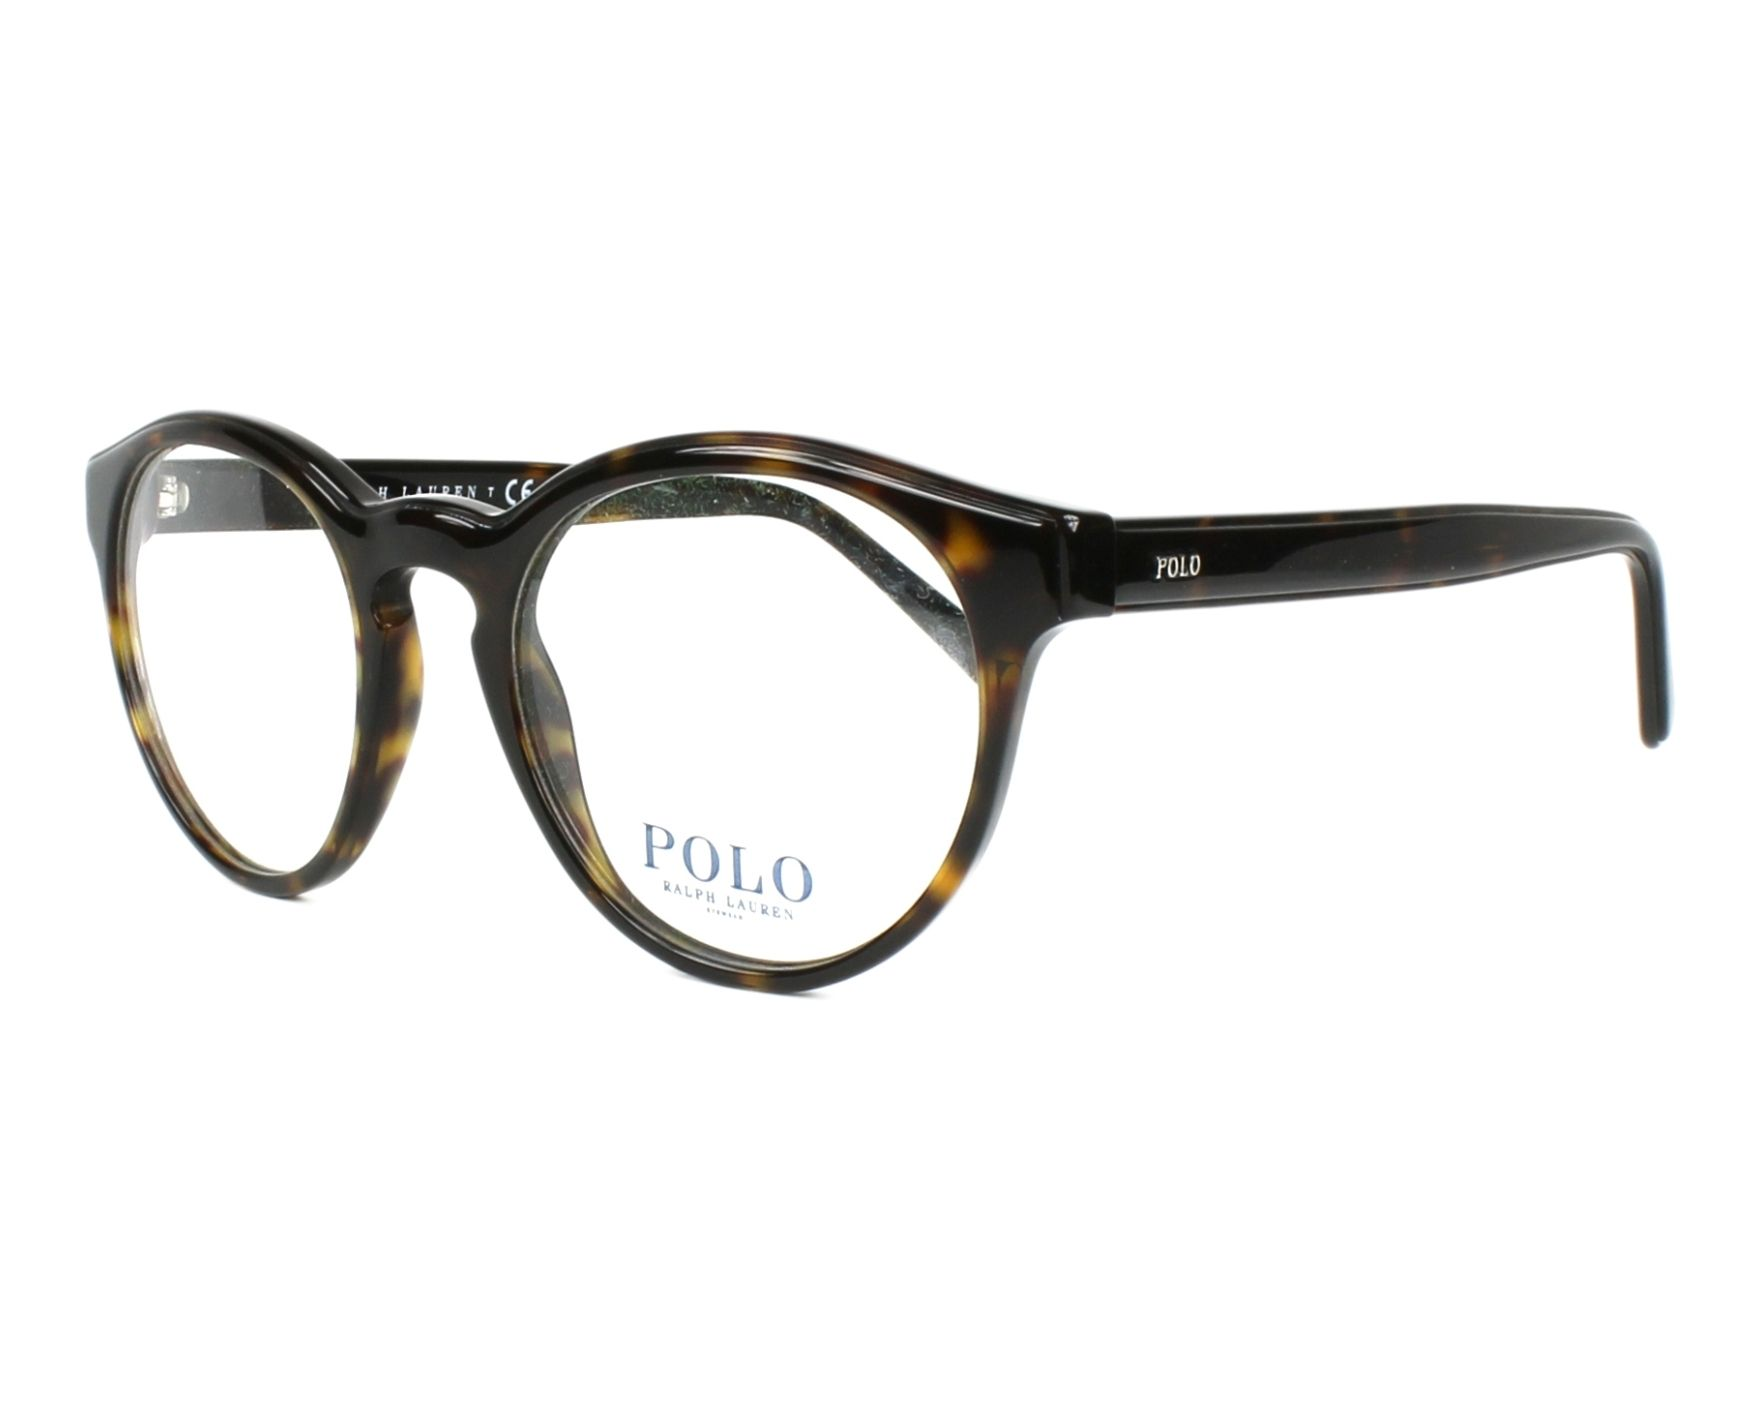 Order your Polo Ralph Lauren eyeglasses PH2175 5003 50 today